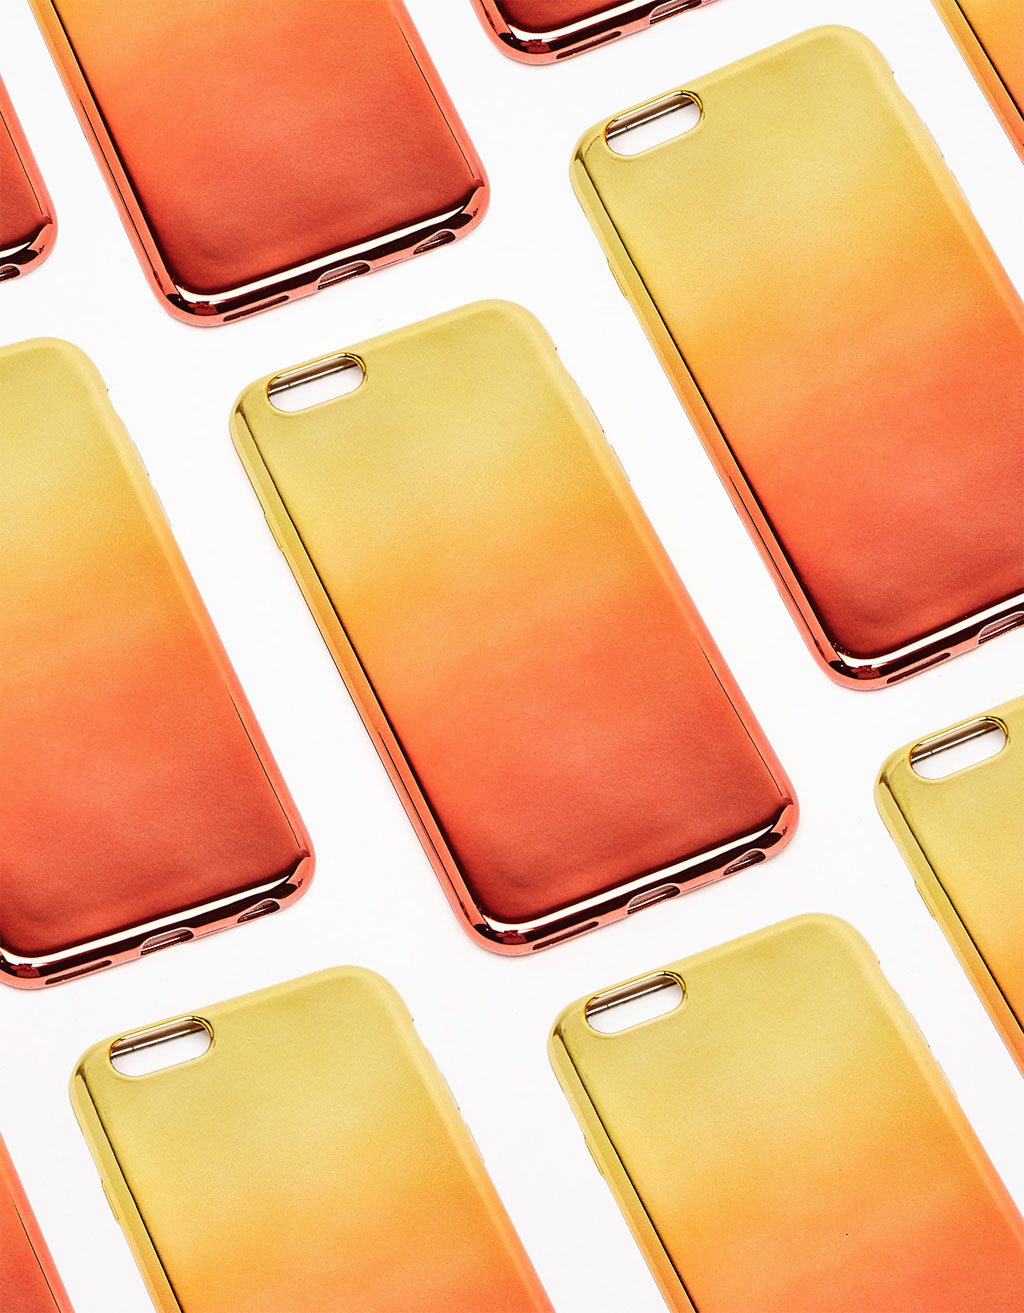 Ombré iPhone 6/6s case